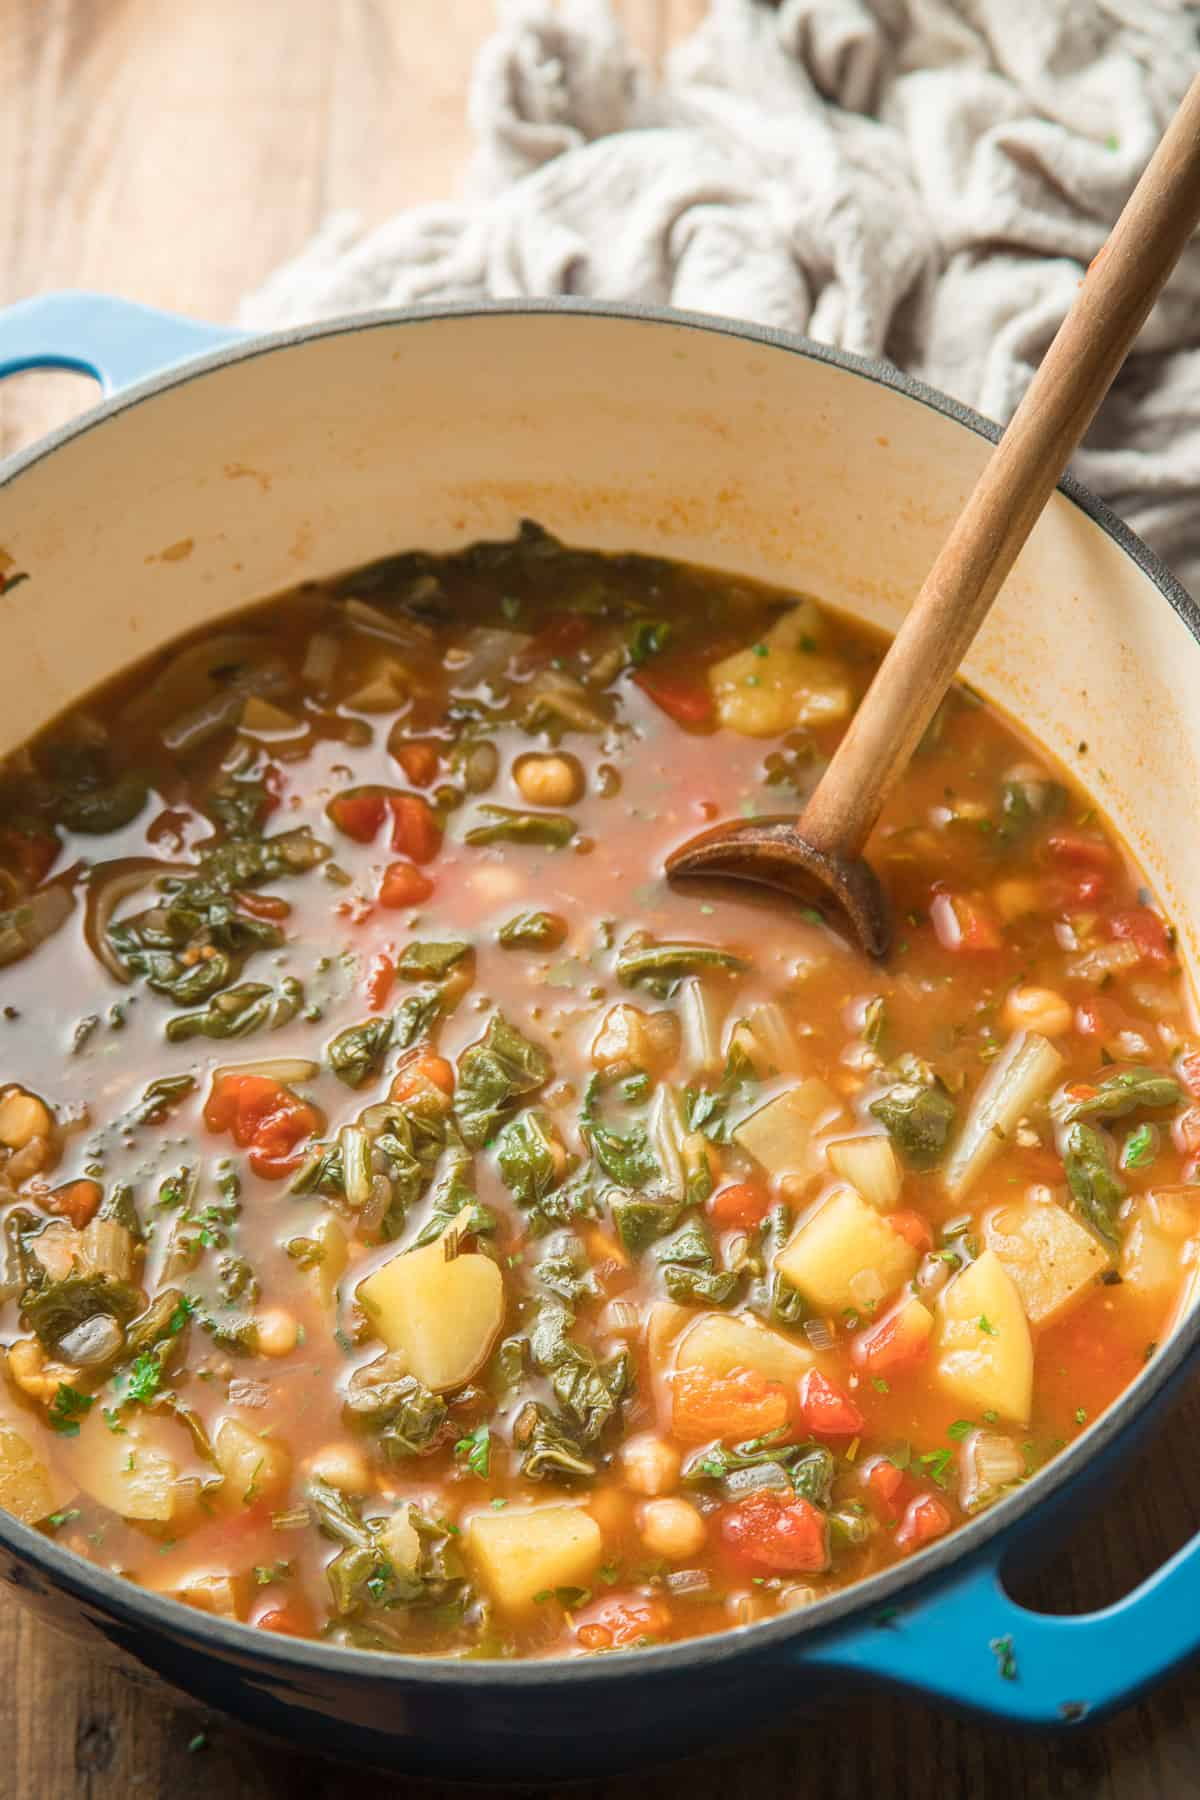 Pot of Swiss Chard Soup with Wooden Spoon